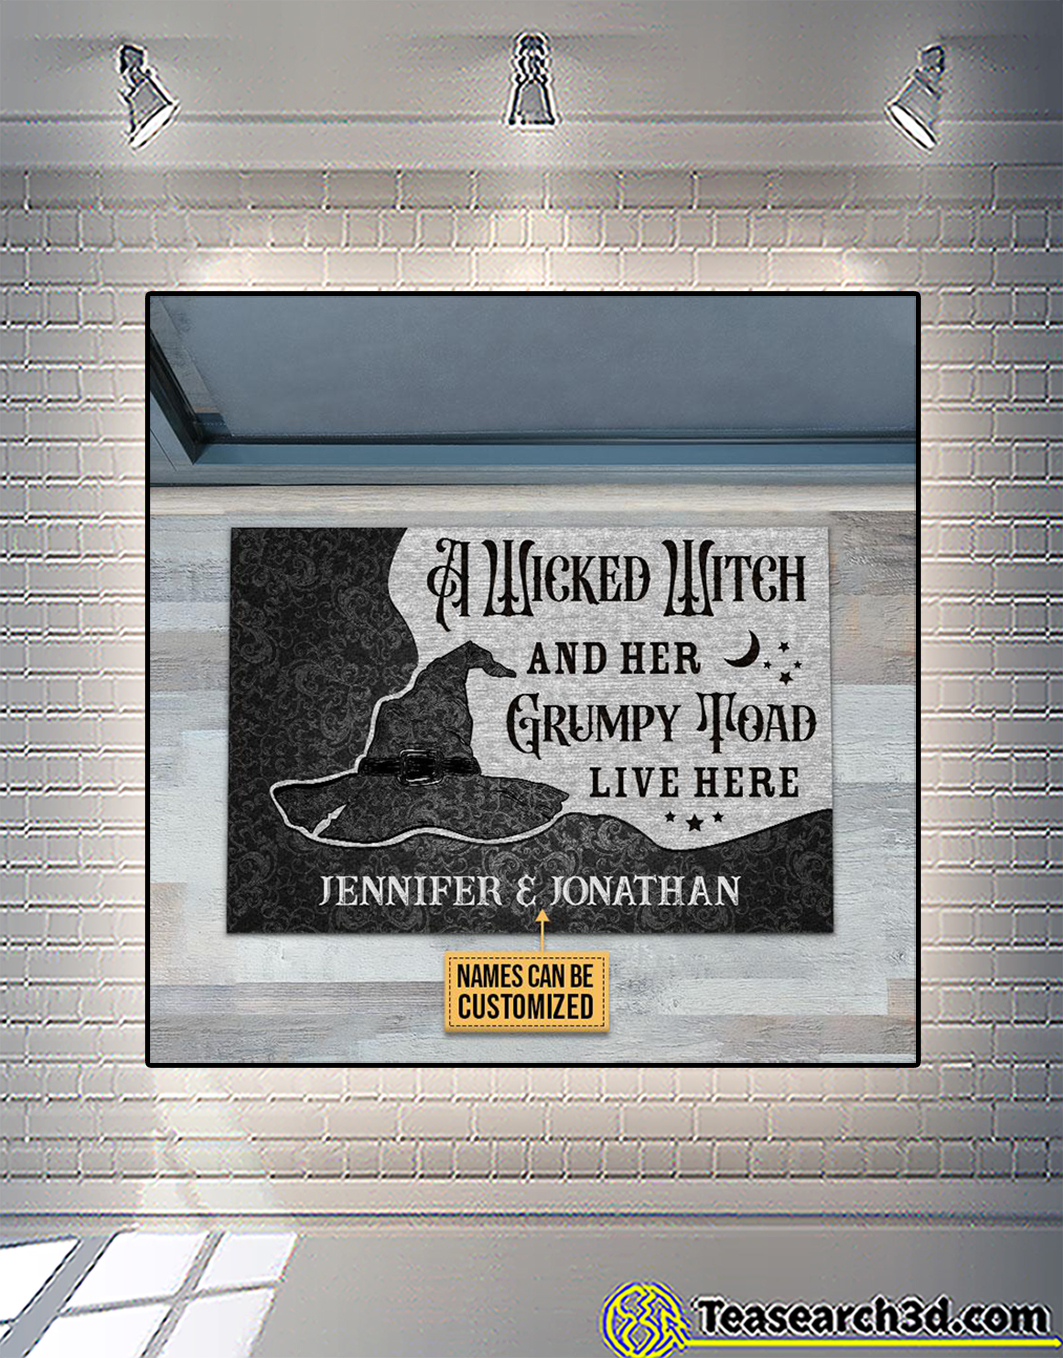 Personalized custom name a wicked witch and her grumpy toad live here doormat 2